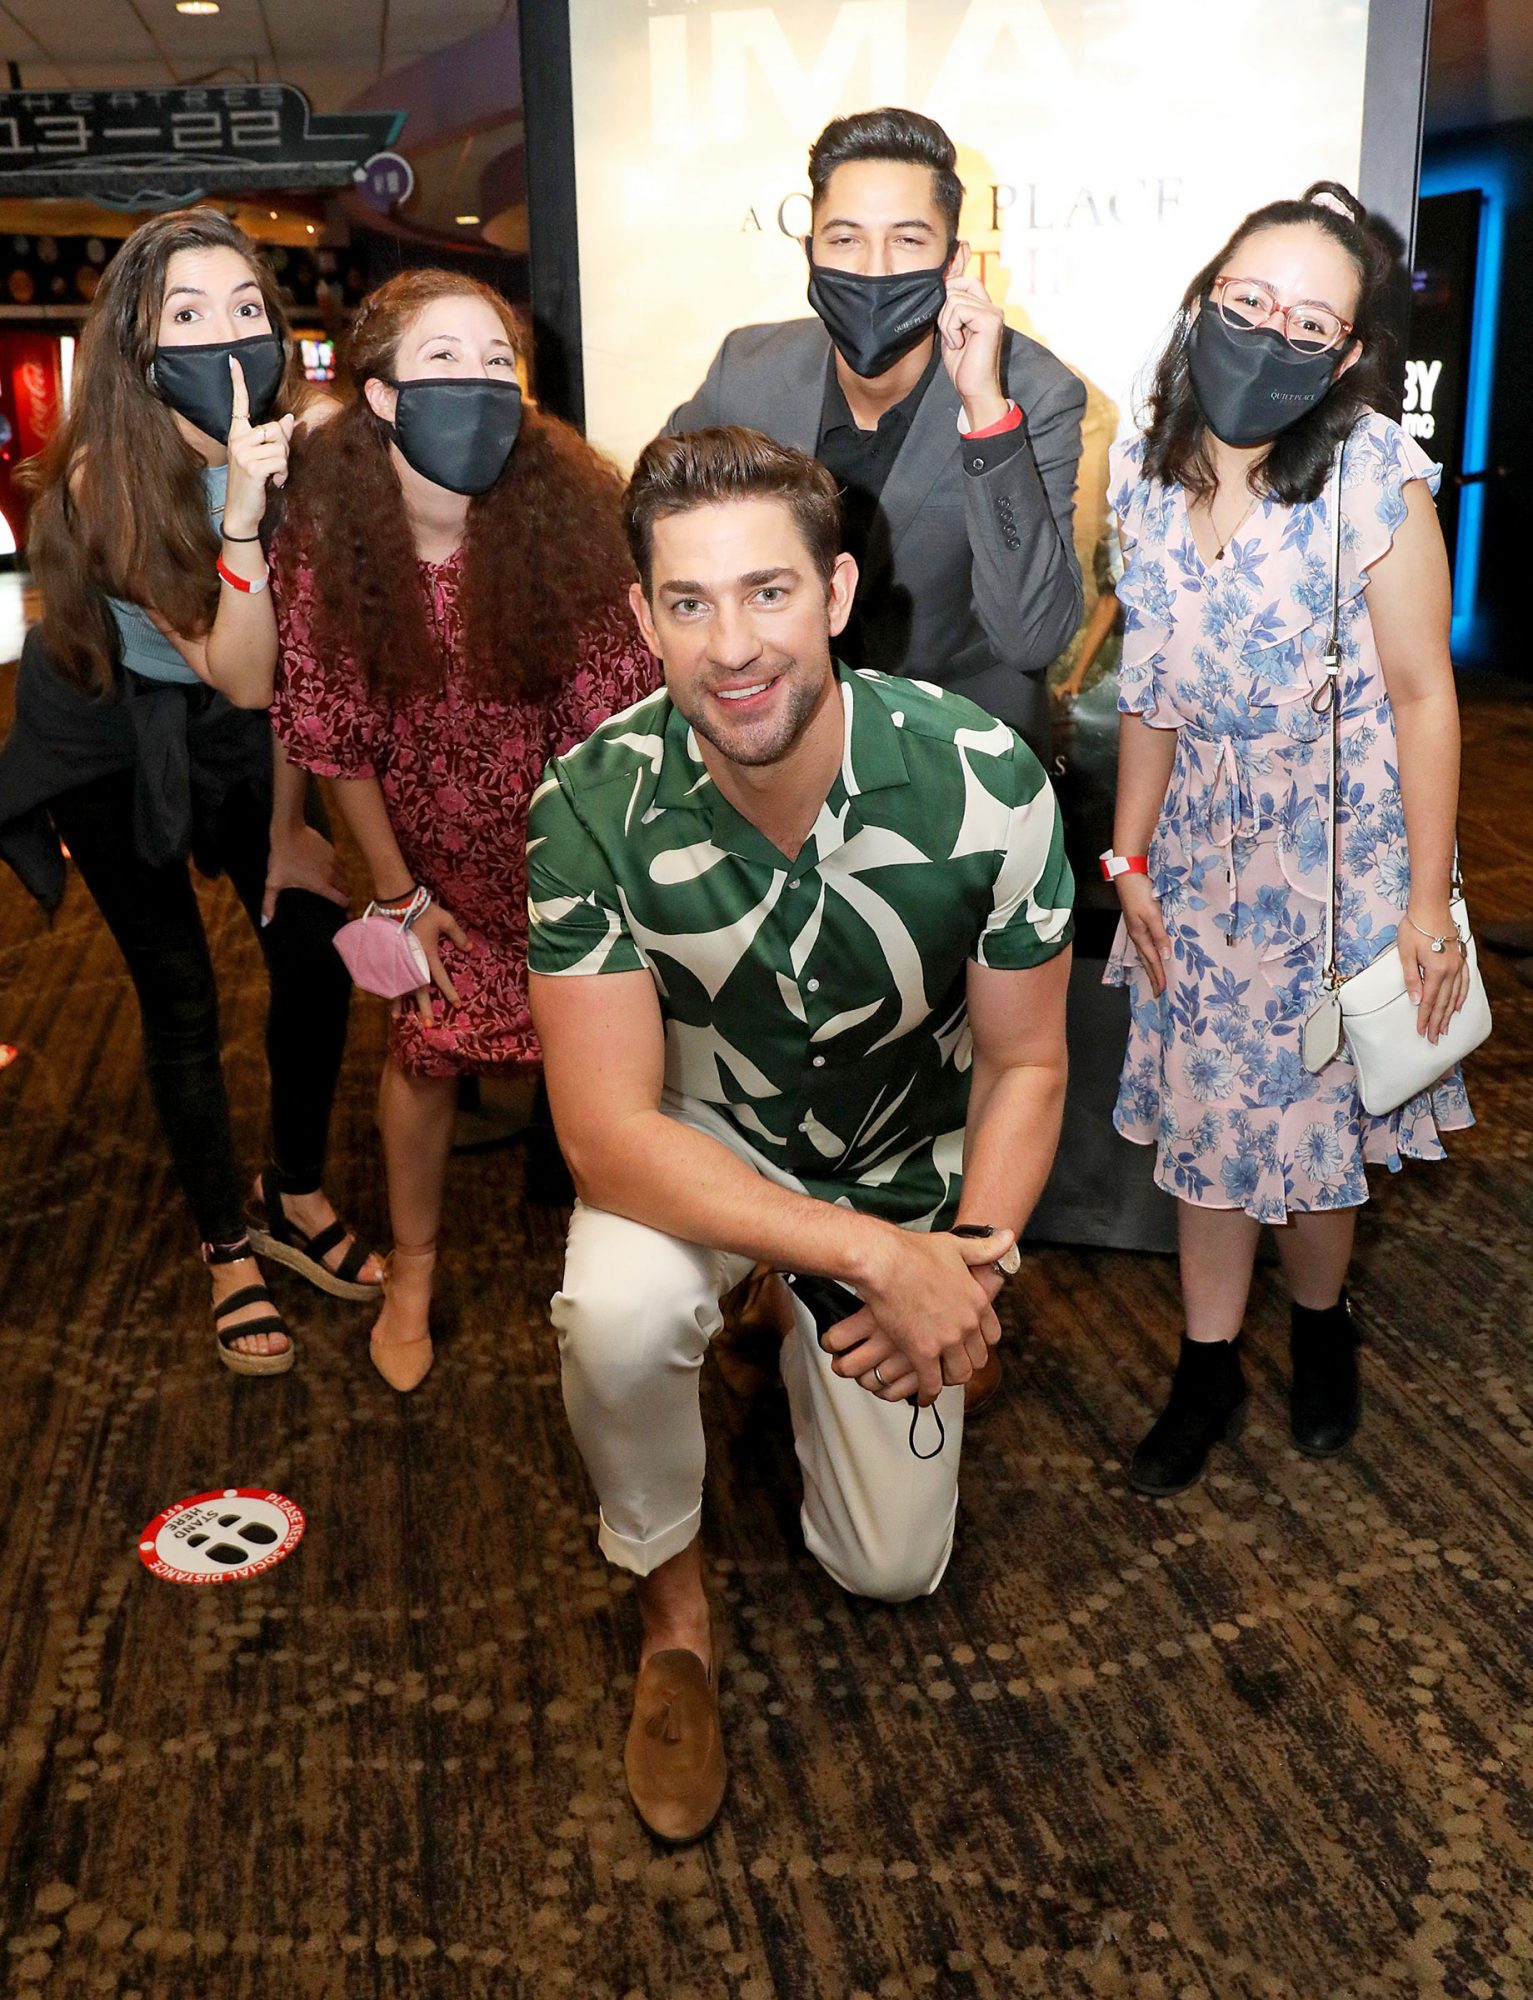 John Krasinski attends the Miami screening of 'A Quiet Place Part II' at the AMC Sunset Place 24 on May 19, 2021 in South Miami, Florida